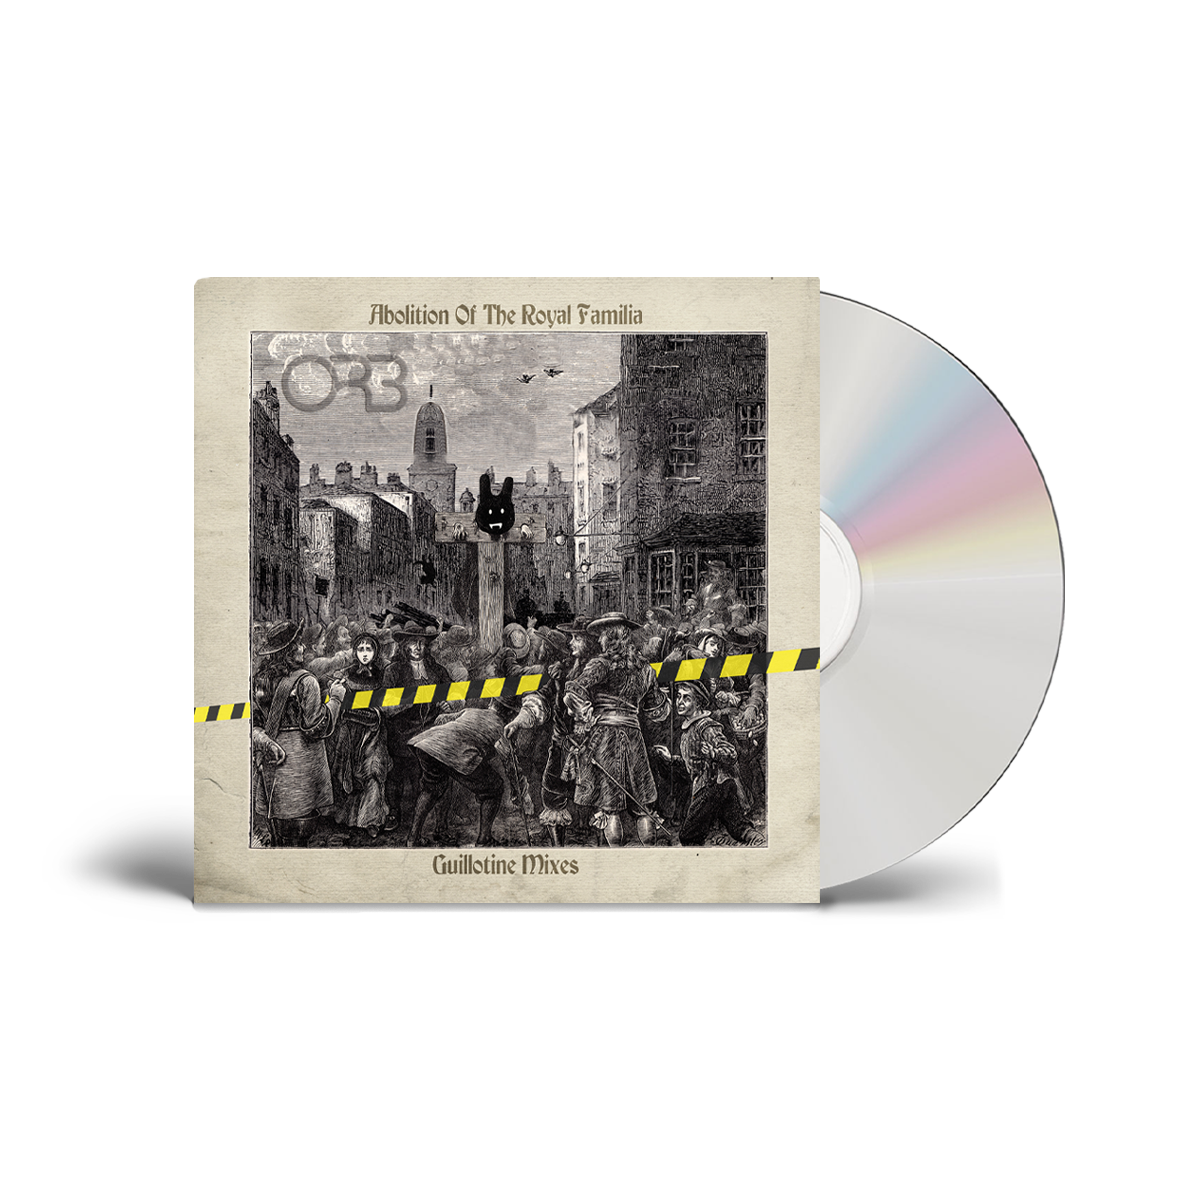 Buy Online The Orb - Abolition Of The Royal Familia - Guillotine Mixes